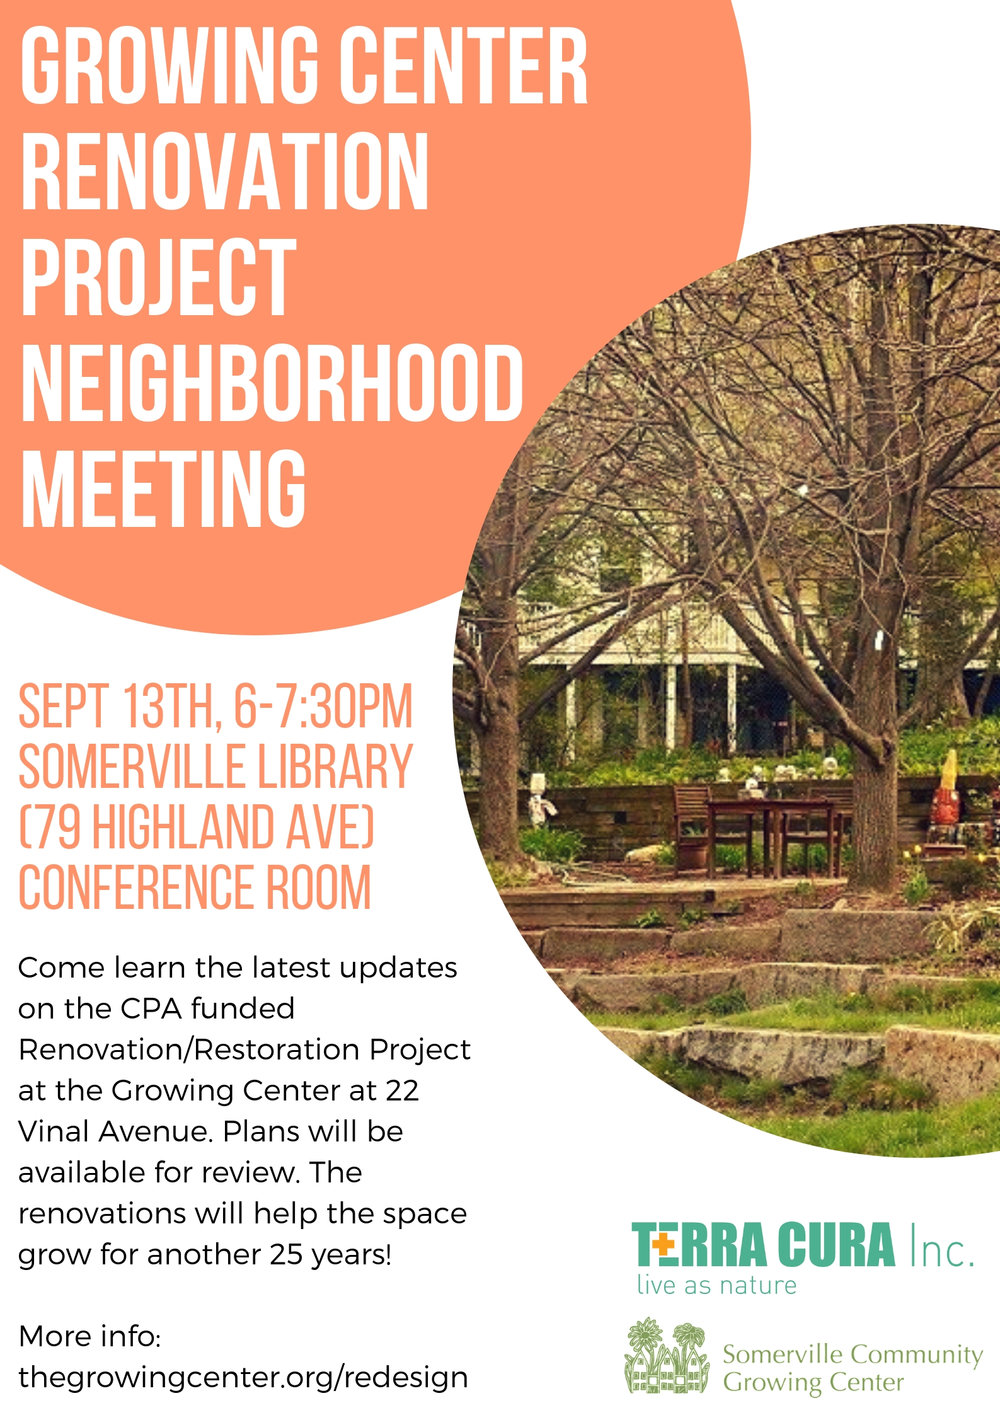 180907 SCGC Neighborhood Meeting flyer.jpg